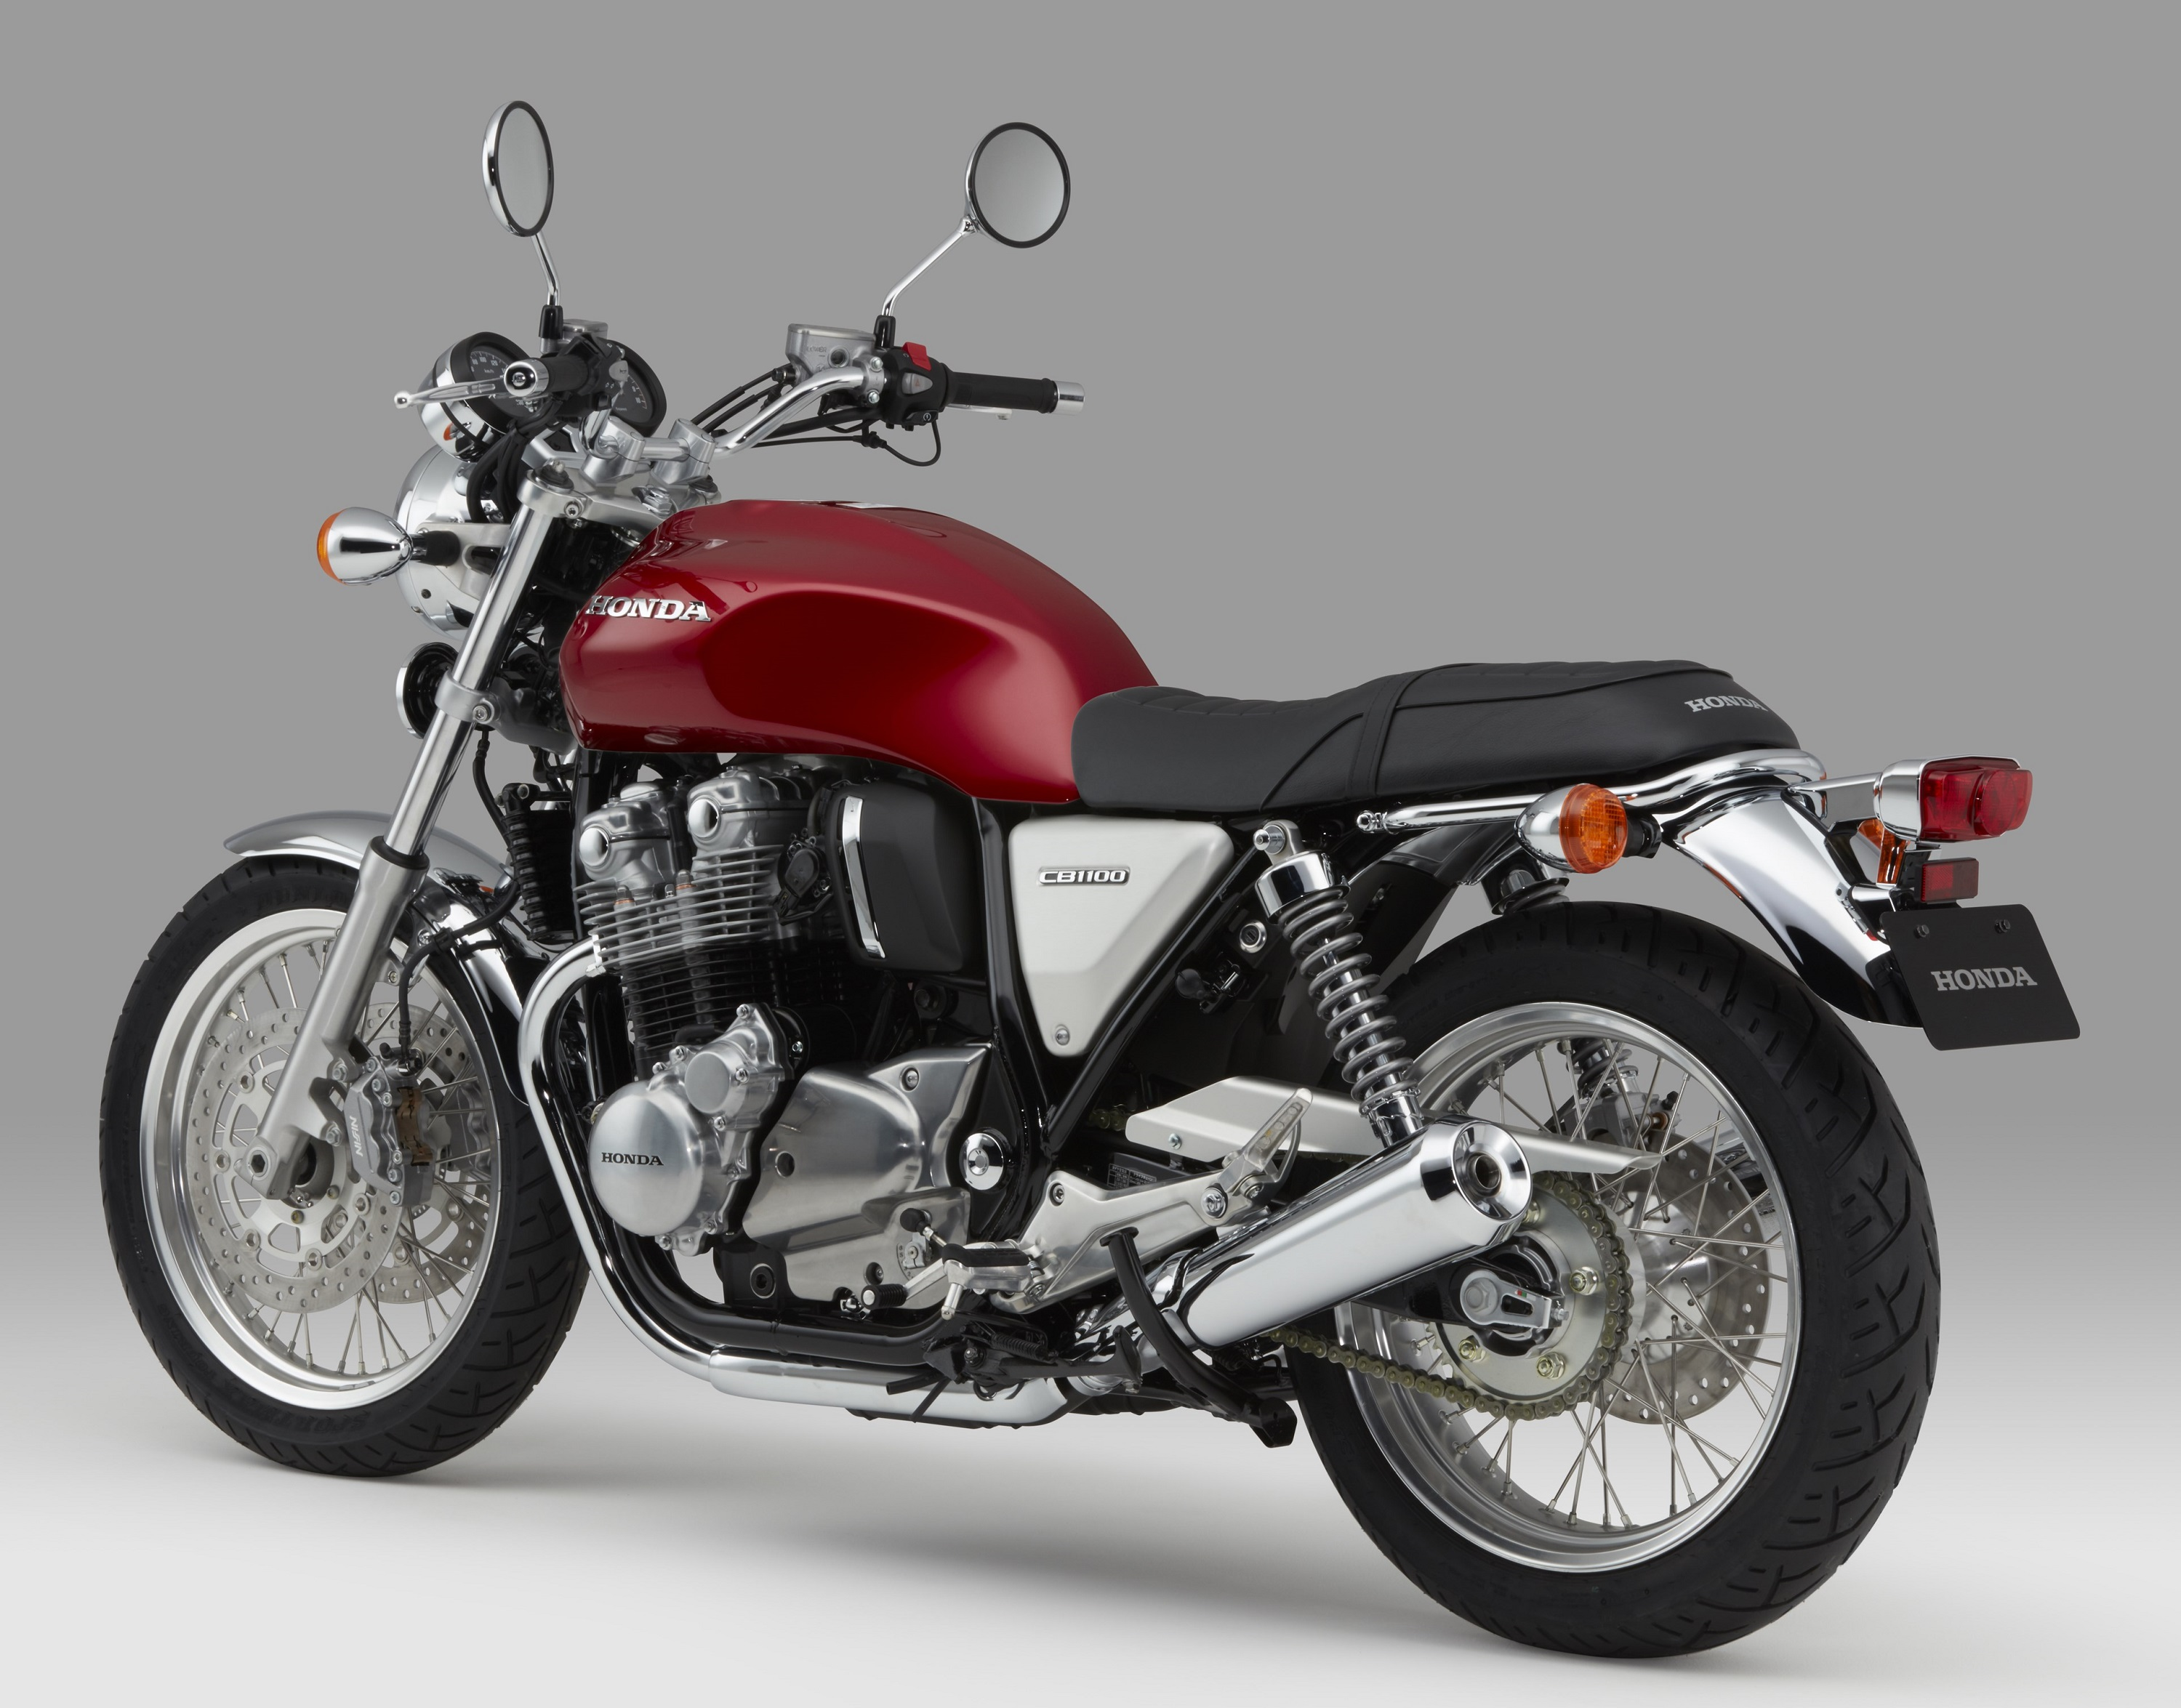 Cb1100 Wiring Diagram Trusted Diagrams Honda Motorcycle Gl1500 Ex U2022 For Sale Price Guide The Bike Market Whirlpool Refrigerator